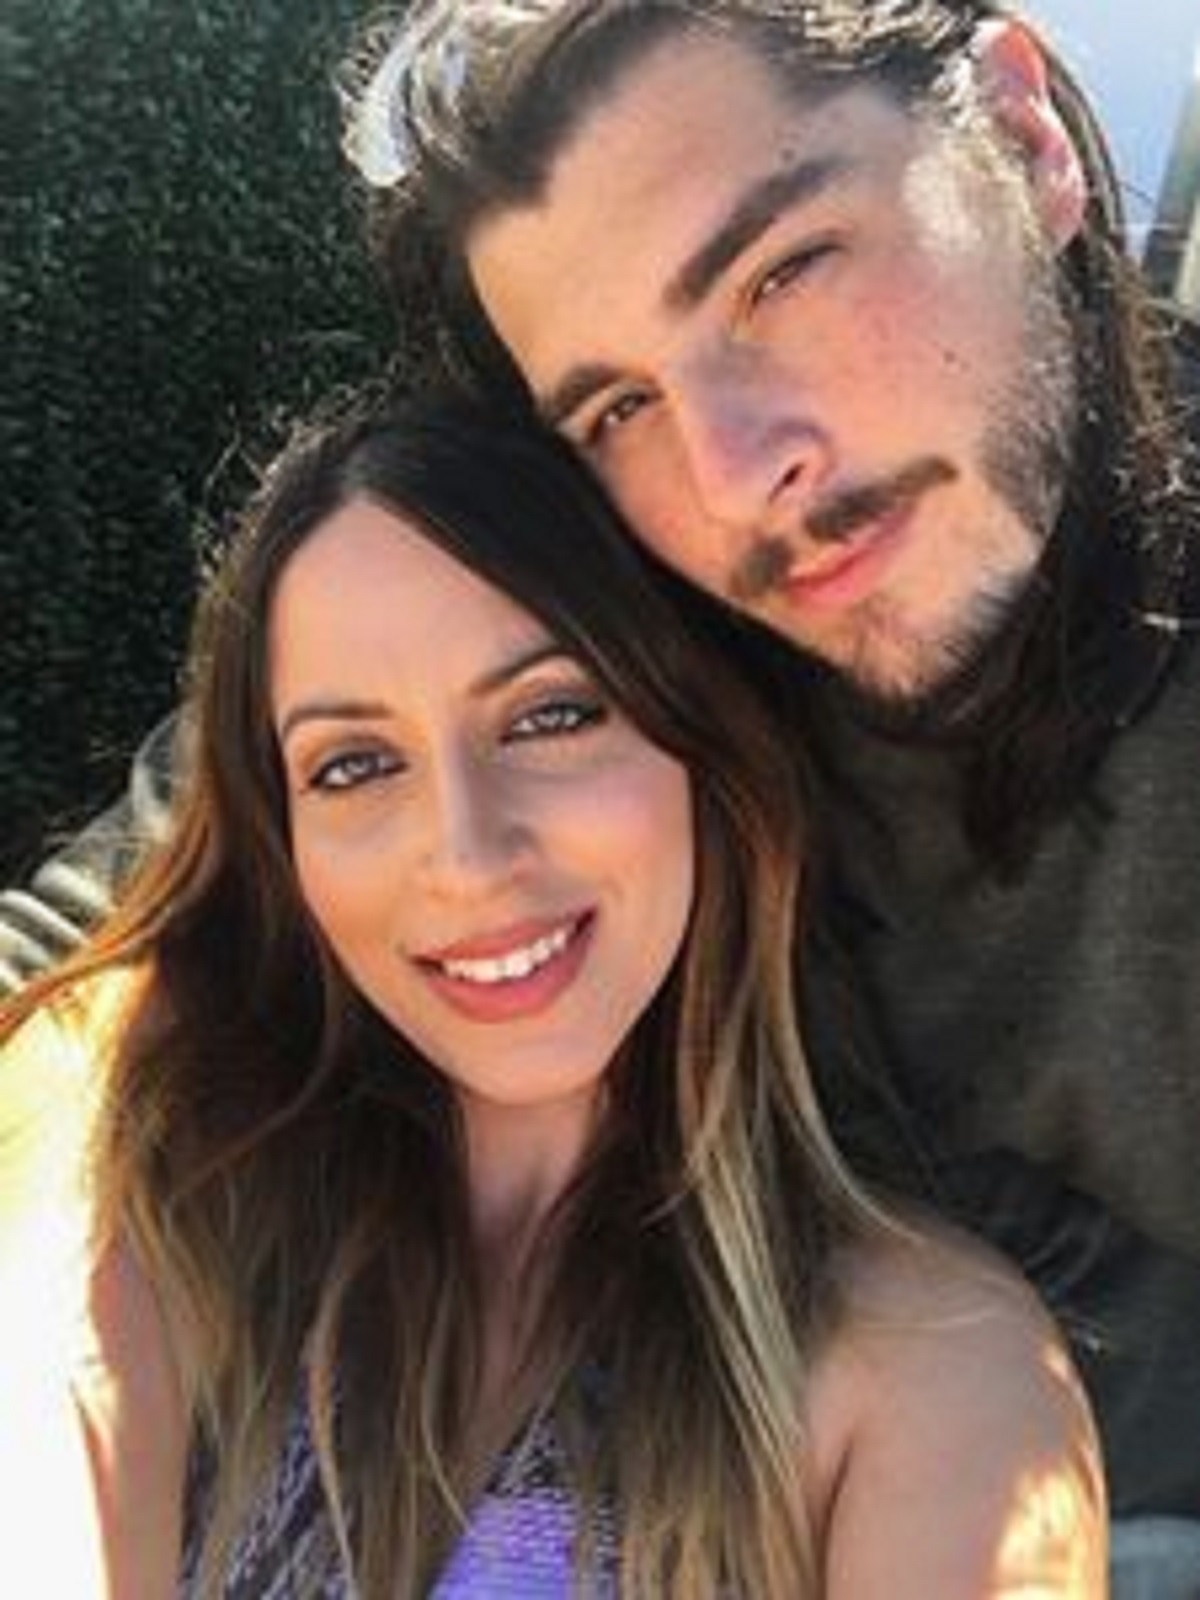 Andrew and Amira from '90 Day Fiance'